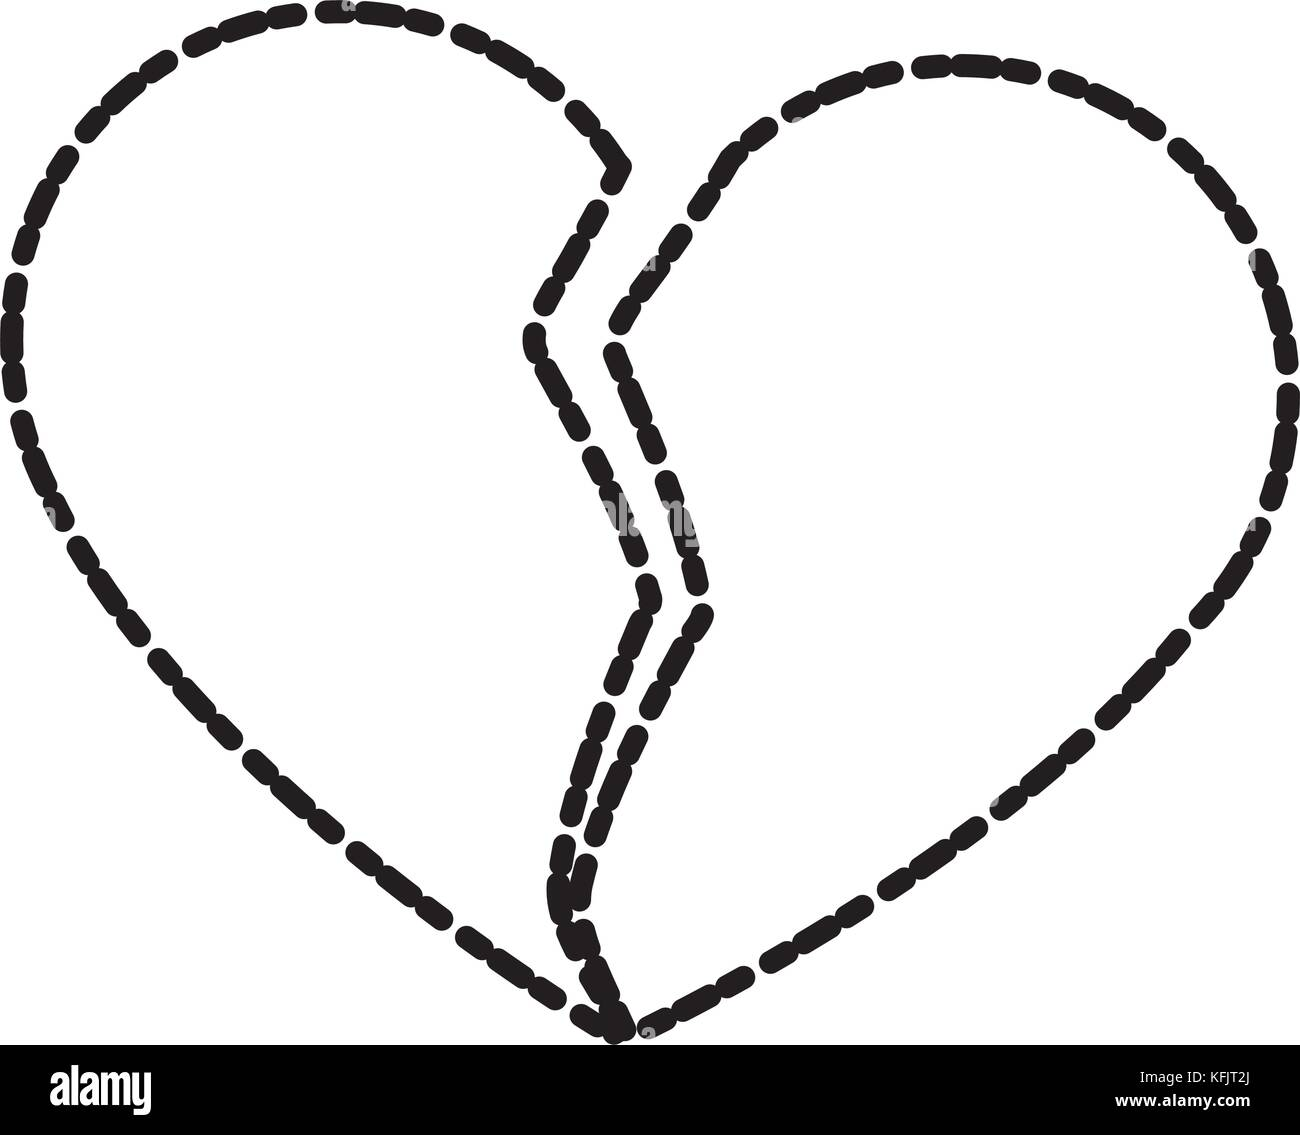 Broken heart black and white stock photos images alamy broken heart symbol stock image biocorpaavc Images